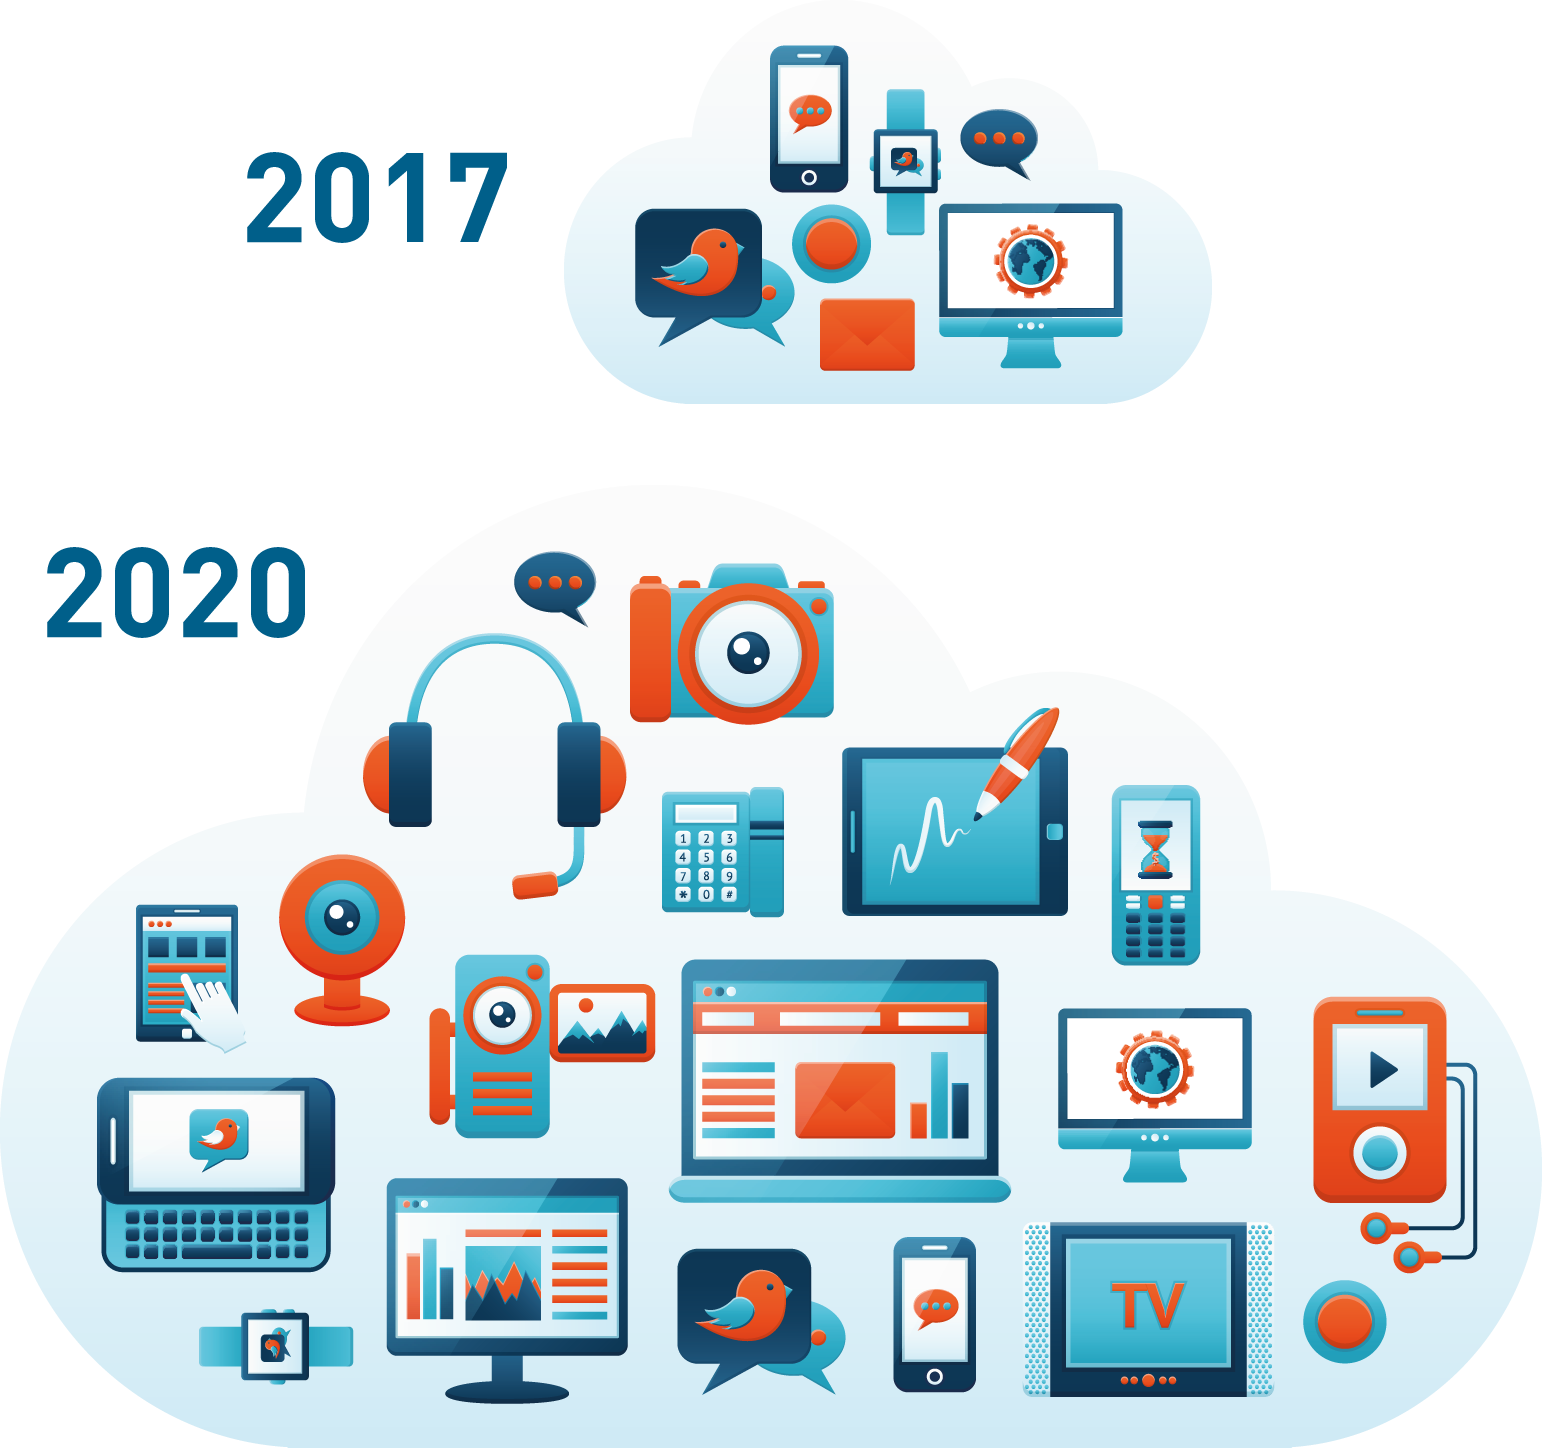 Gartner predicts a multifold increase in connected devices by 2020.